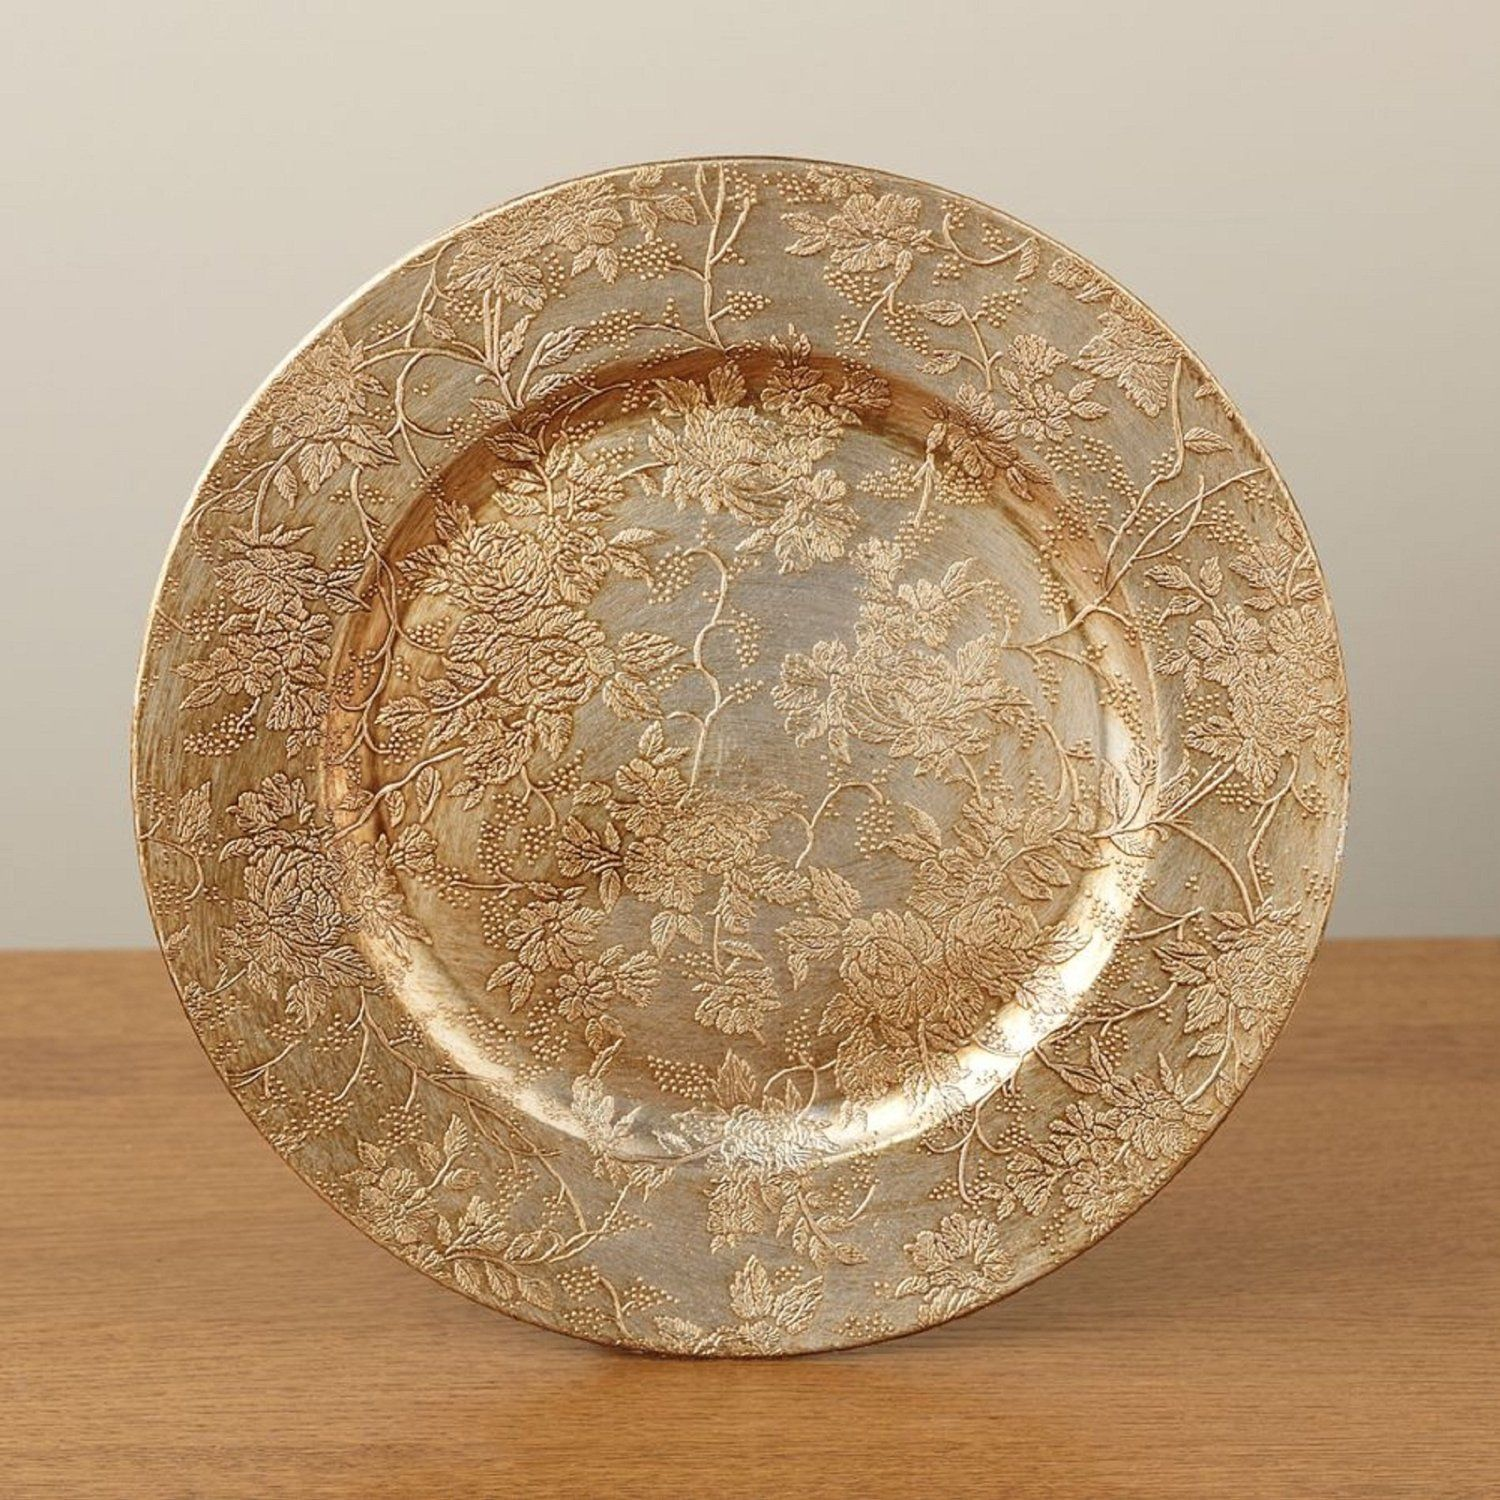 Amazon.com: Holidays Antique Embossed Design Charger Plates (ANTIQUE EMBOSSED GOLD): Kitchen & Dining